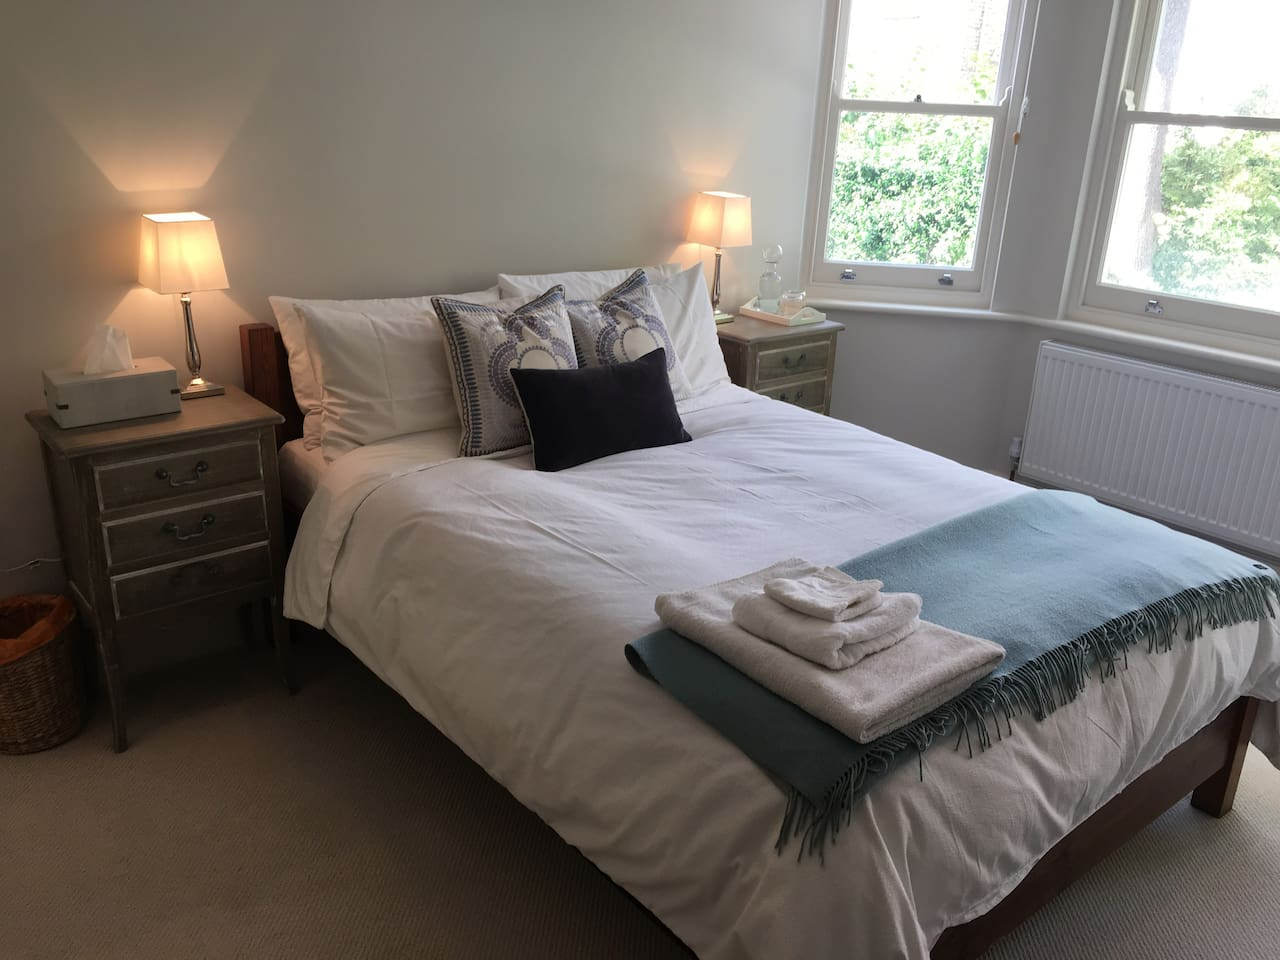 A relaxing, bright and stylish room, with windows facing out onto gardens and trees. The room is very quiet, with very little outside noise. It has three large windows and lots of natural light. Sometimes you can even see squirrels in the trees outside.